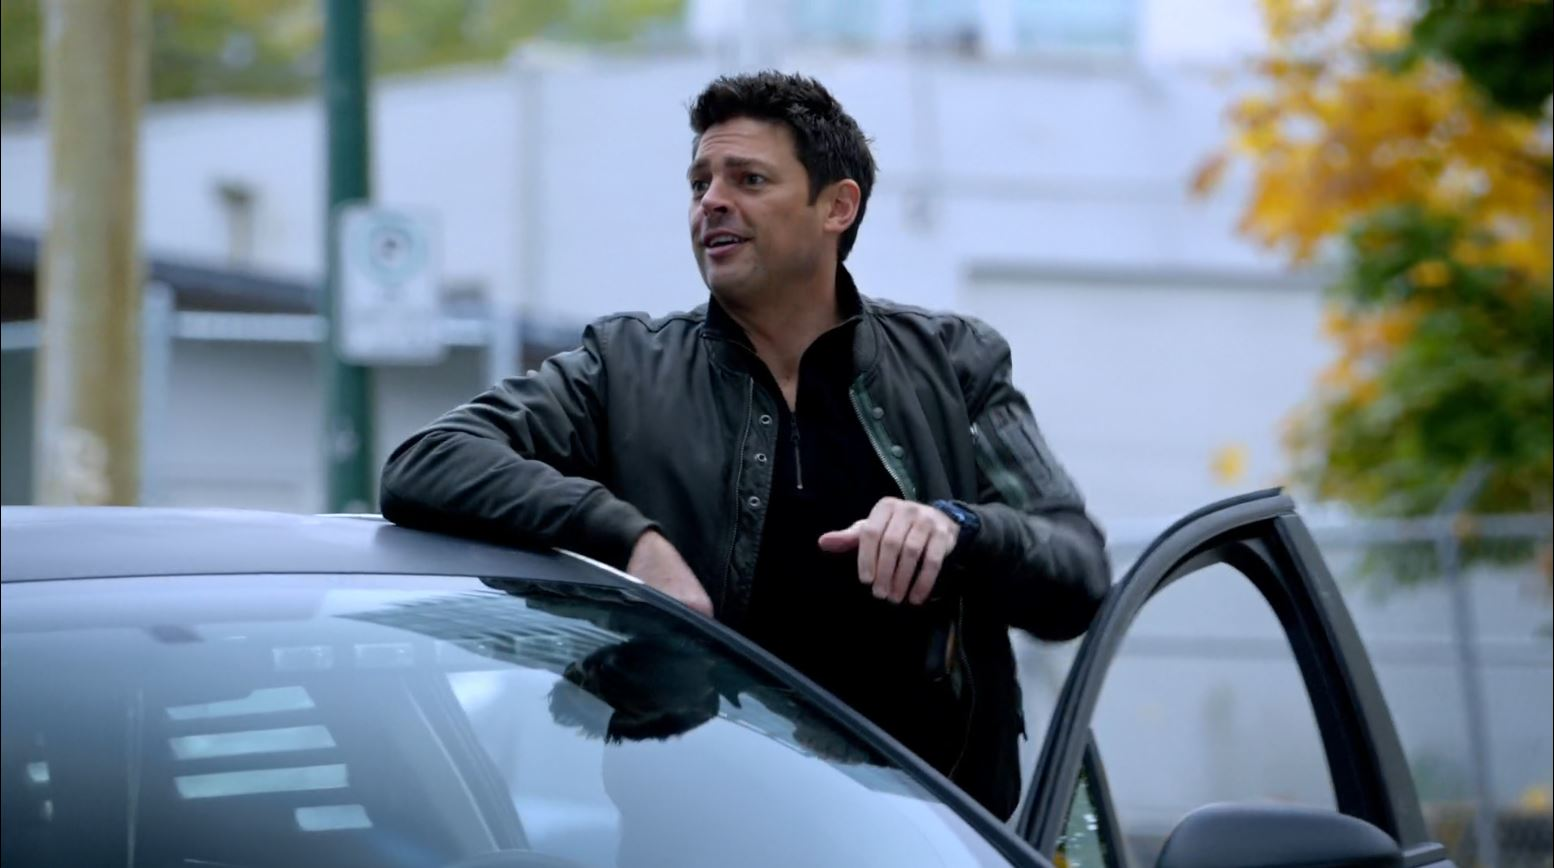 Almost Human - Kennex (Karl Urban) questions why the chief witness would go for a walk